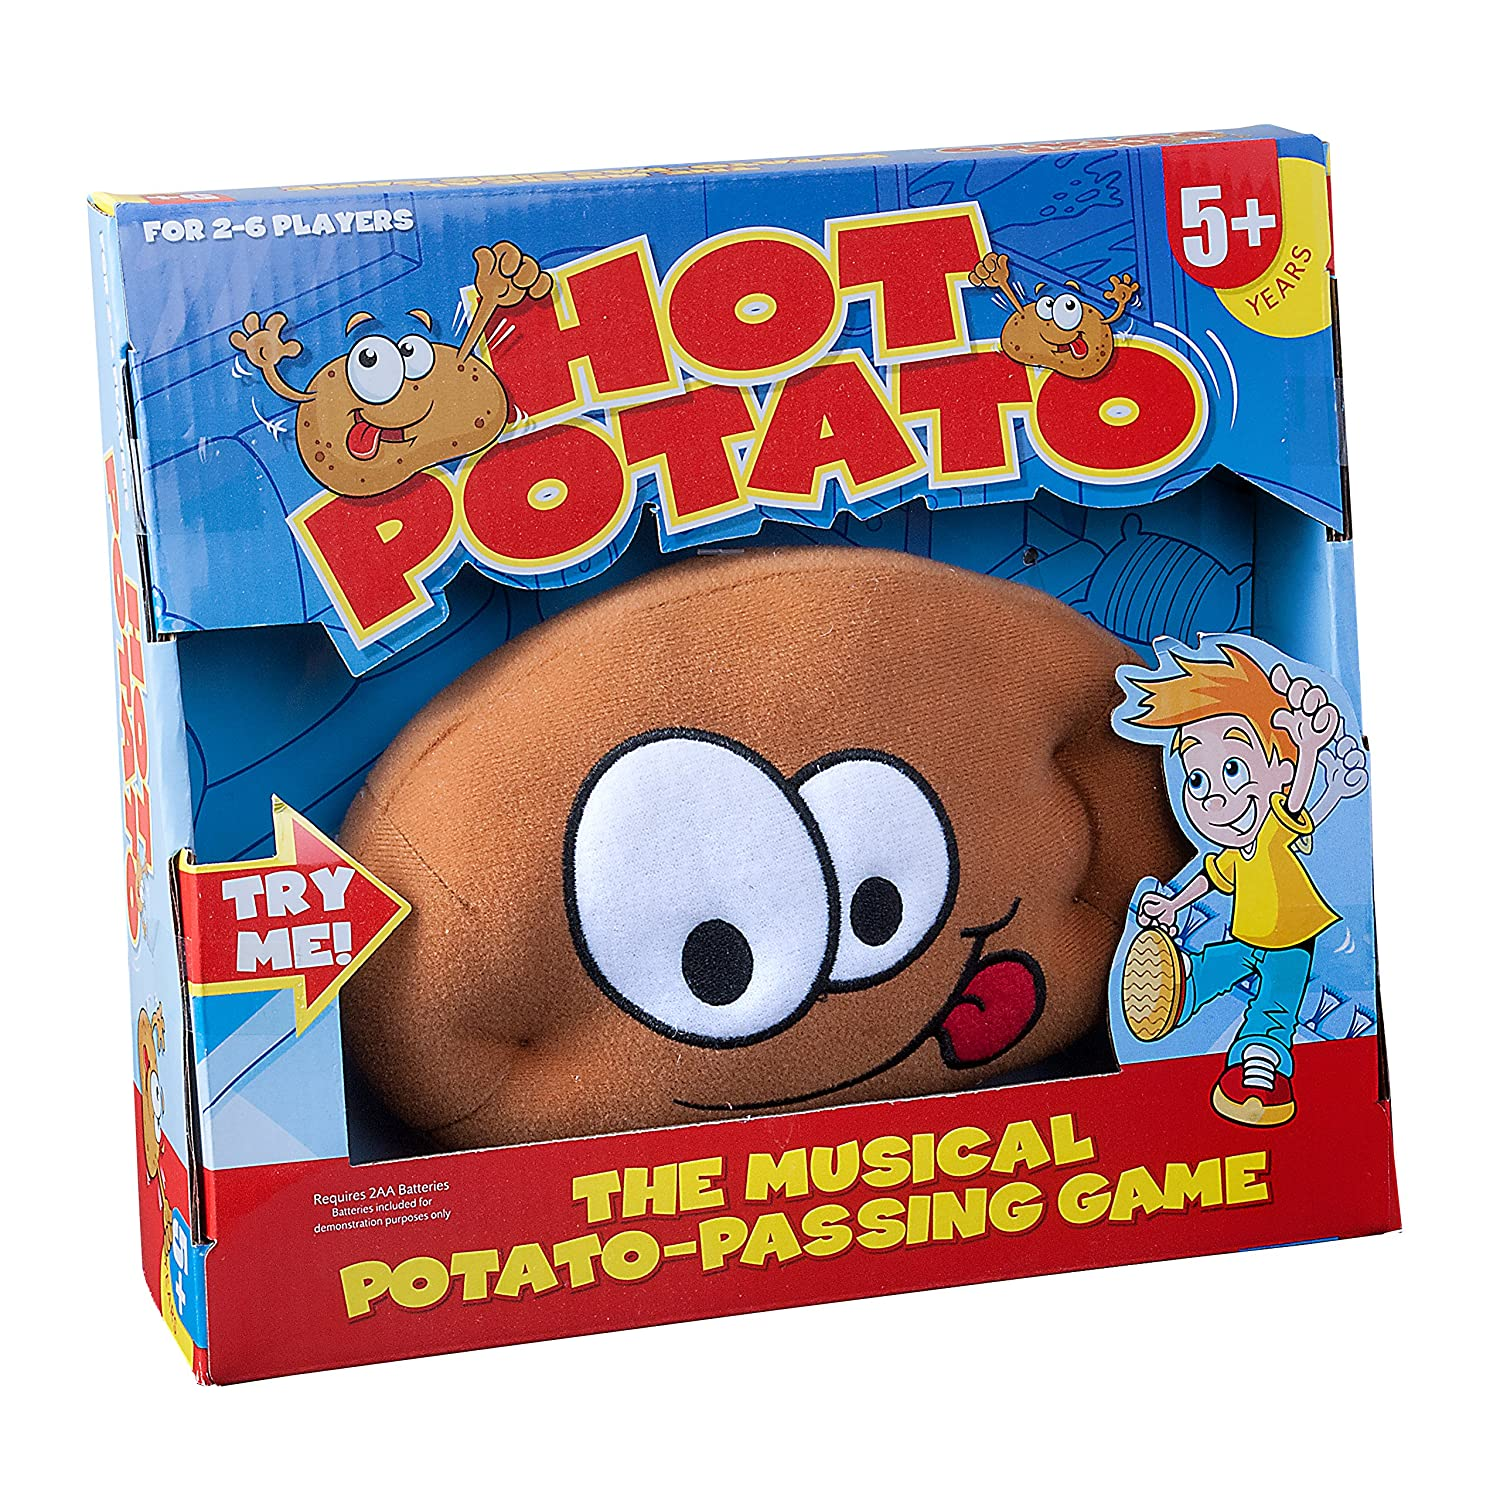 Paul Lamond 1851 Hot Potato Game - New Paul Lamond Games Ltd